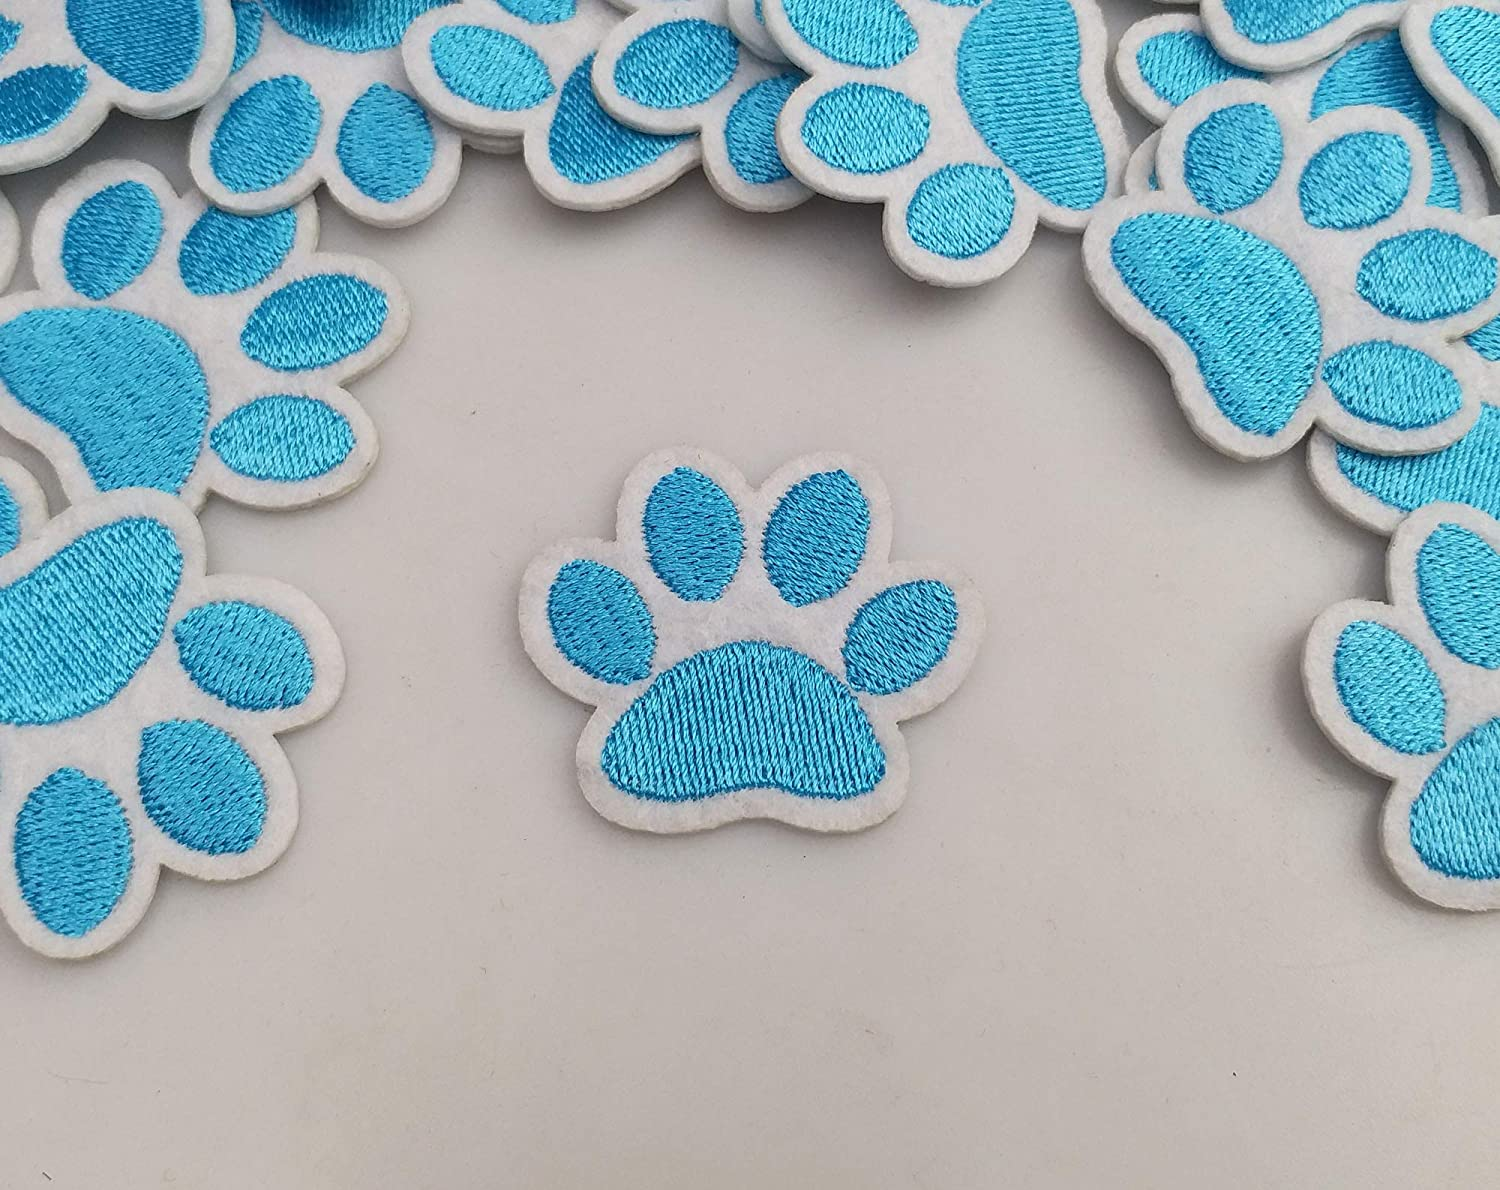 1.6x1.3 20pcs Dog Paw Puppy Blue Paw Iron On Embroidered Patches Appliques Machine Embroidery Needlecraft Sewing Clothes